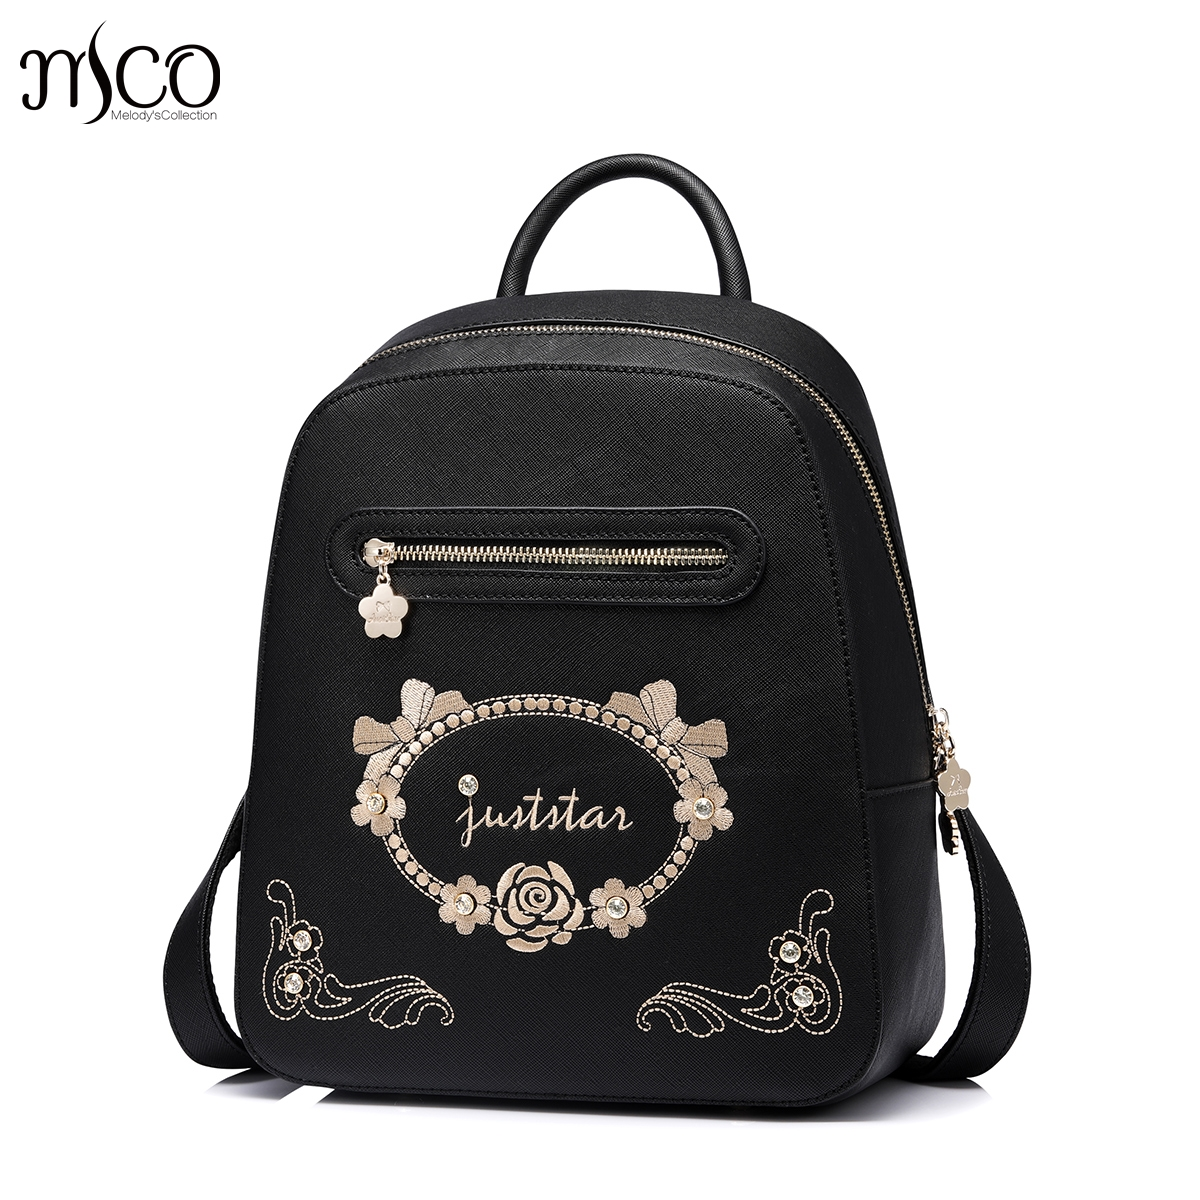 2017 Fashion Embroidery Girl Backpacks Cute School Bags New Women Backpack PU Leather Female Shoulder Bag mochilas mujer women backpacks fashion pu leather shoulder bag small backpack women embroidery dragonfly floral school bags for girls